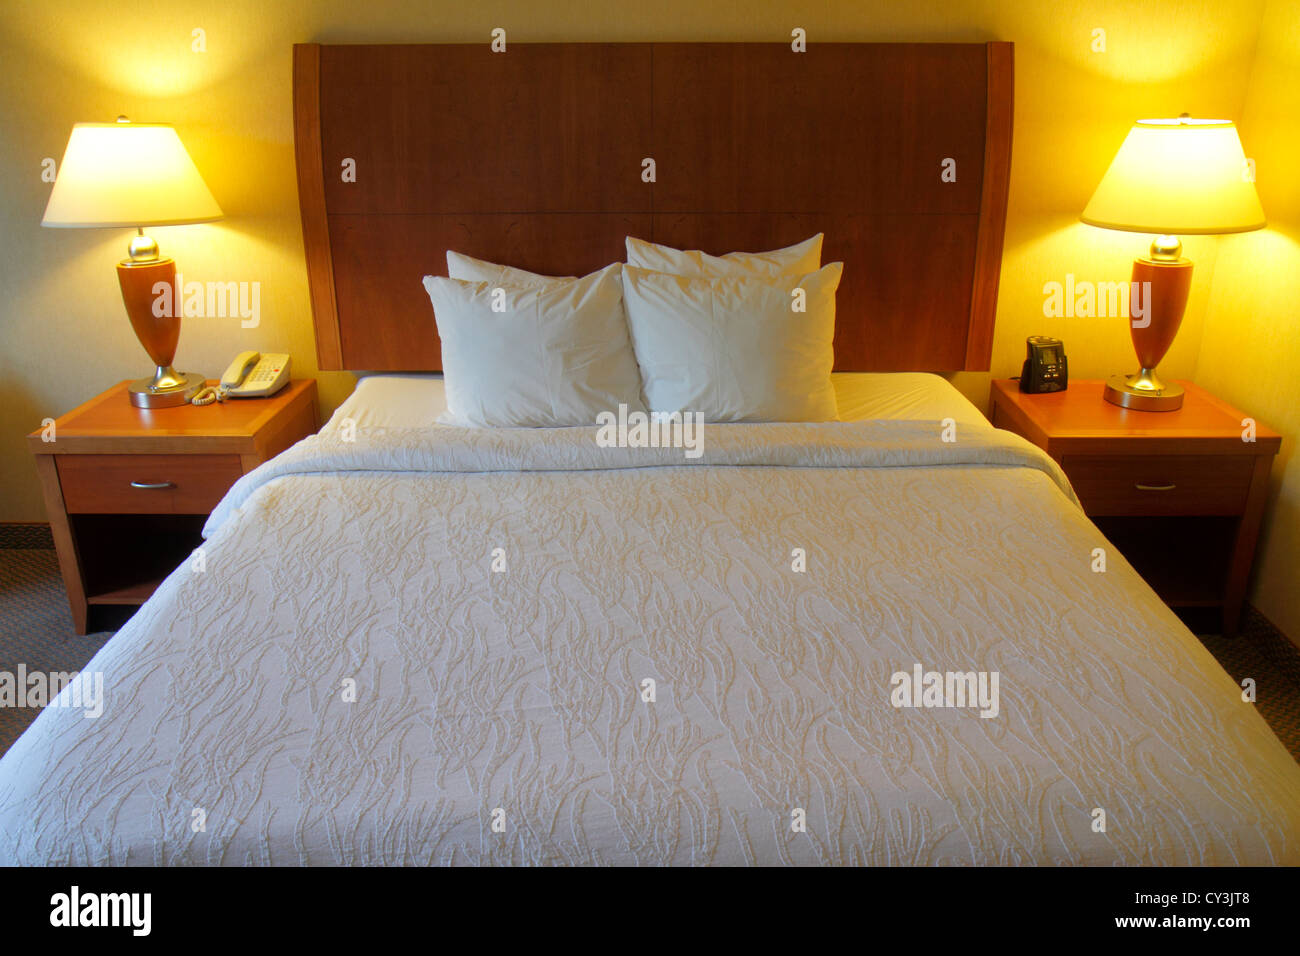 Maine Freeport Hilton Garden Inn motel hotel guest room queen-size bed made pillows lamps tables headboard - Stock Image